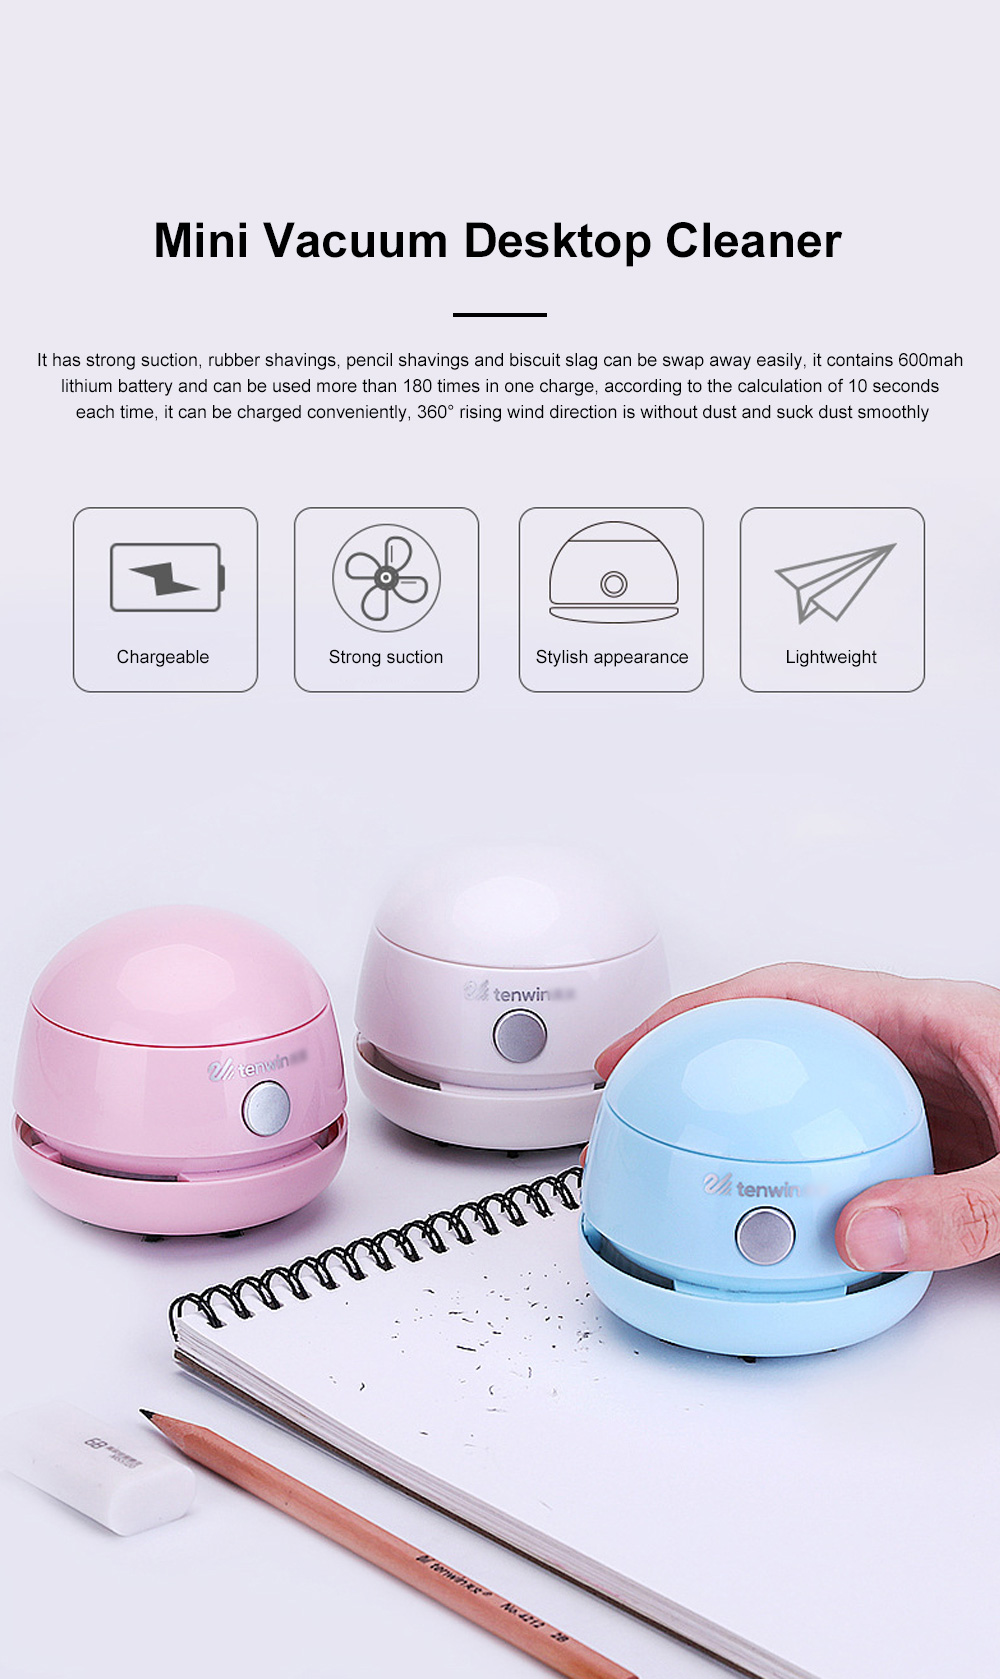 Mini Vacuum Cleaner Desktop Office Cleaner Easily Inhaled Paper Dust Suction Strong And Convenient 0